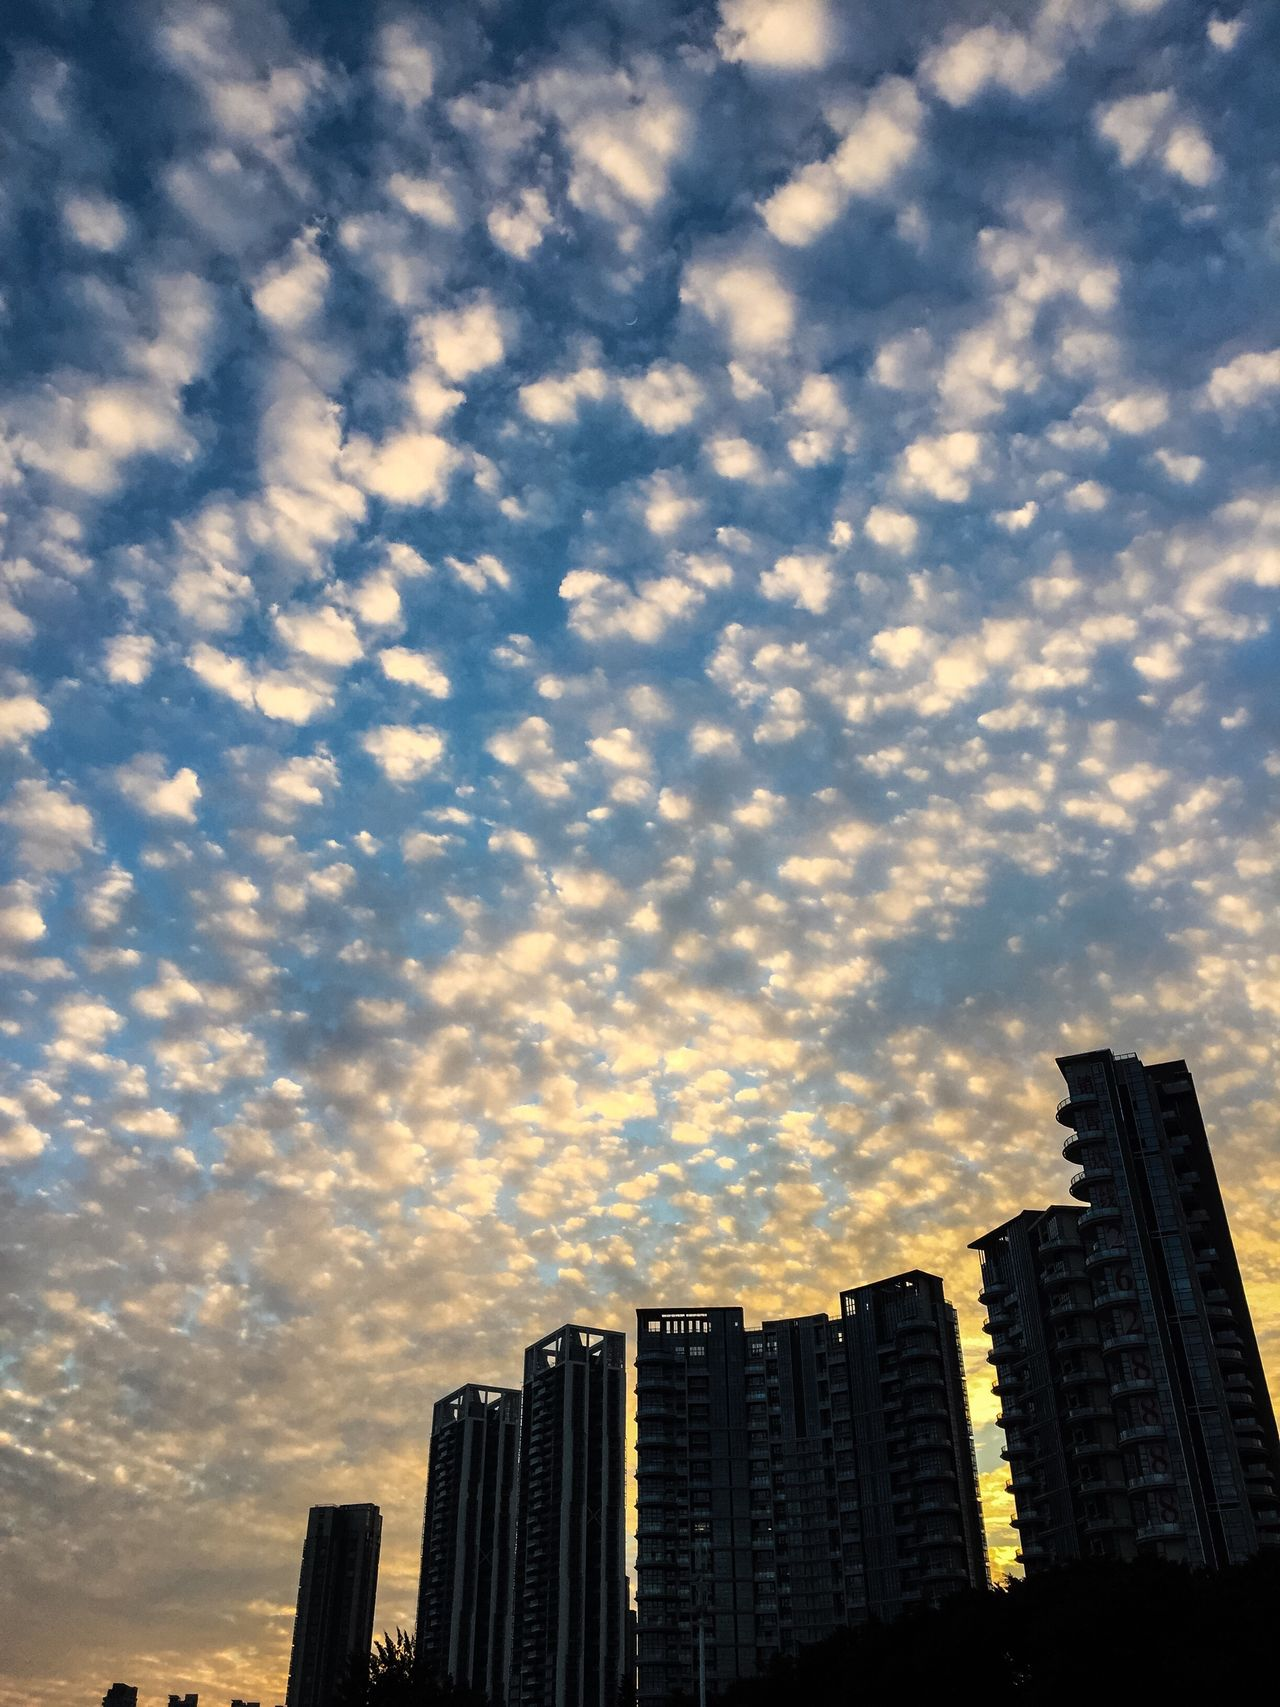 Cloud - Sky Sky City Building Exterior Architecture Built Structure Modern Skyscraper City Life No People Cityscape Low Angle View Outdoors Urban Skyline Sunset Travel BEIJING北京CHINA中国BEAUTY Zhuhai City Life Cityscape Holiday Nature Day